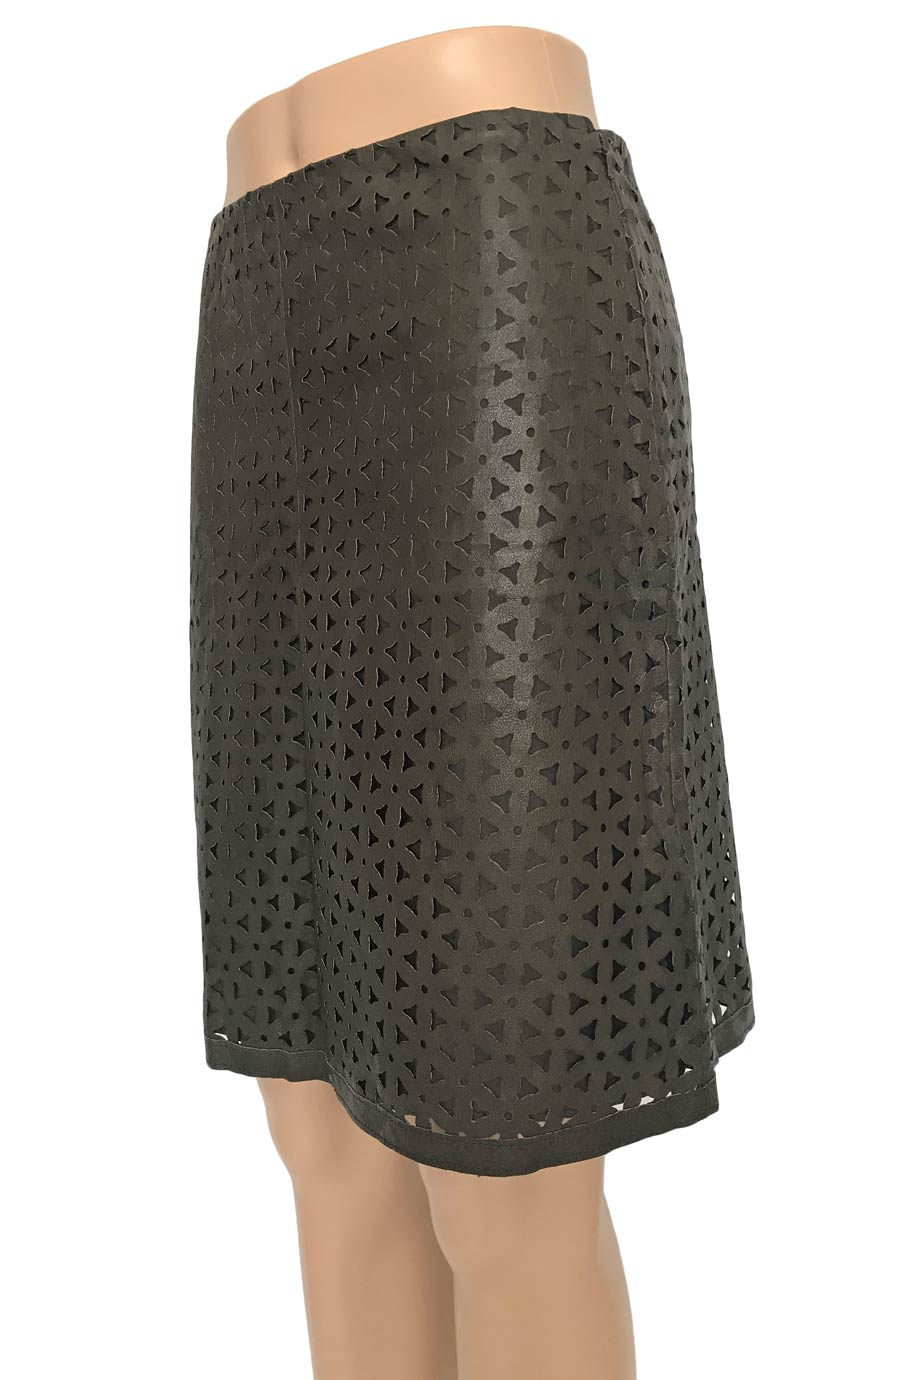 Worth Laser Cut Brown Leather A-Line Mini Skirt / Sz 0-Style Therapy